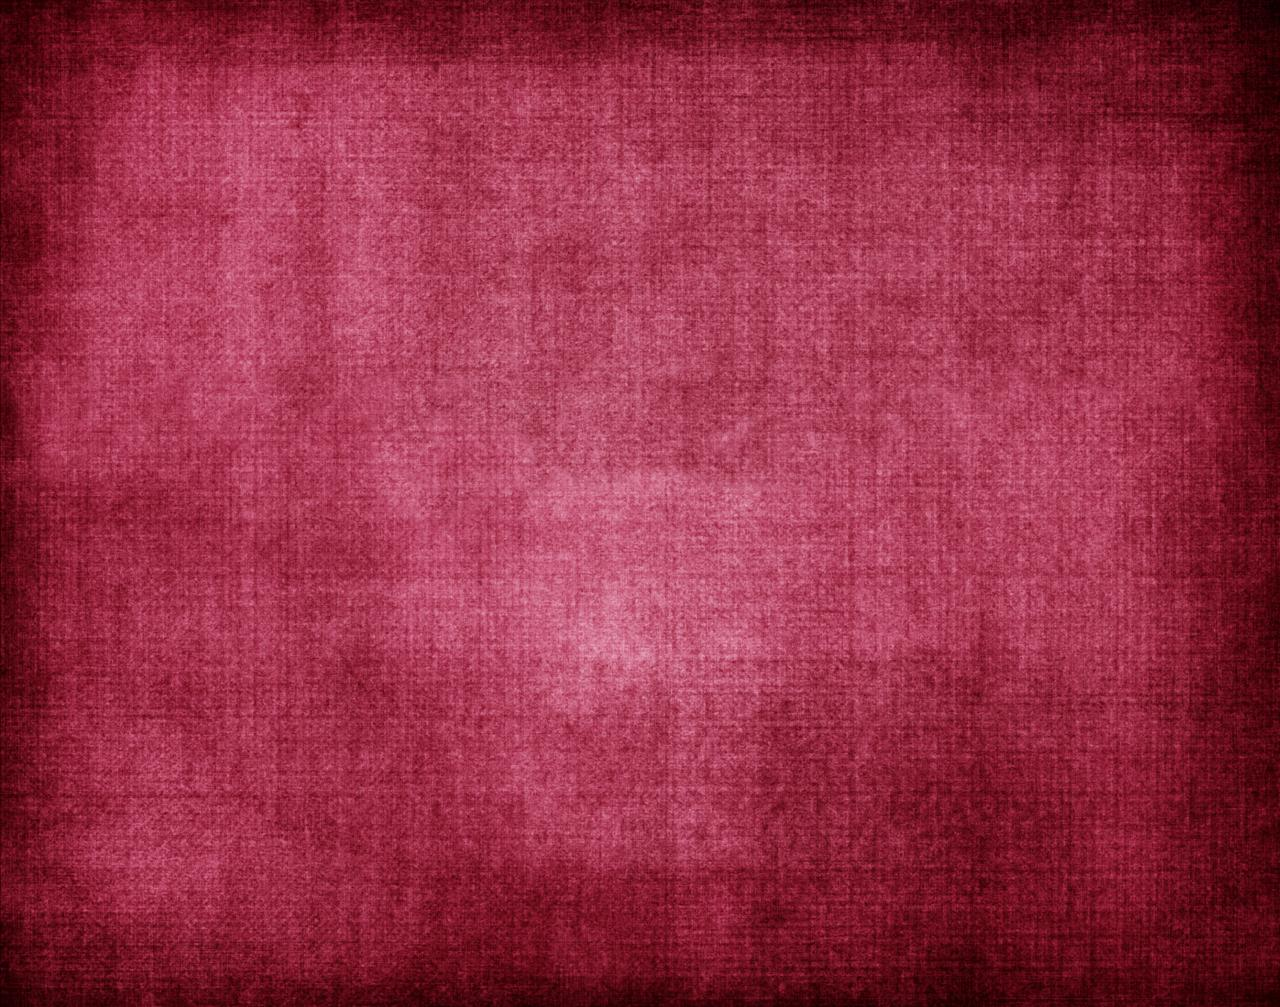 Burgundy Texture Related Images 1280x1007